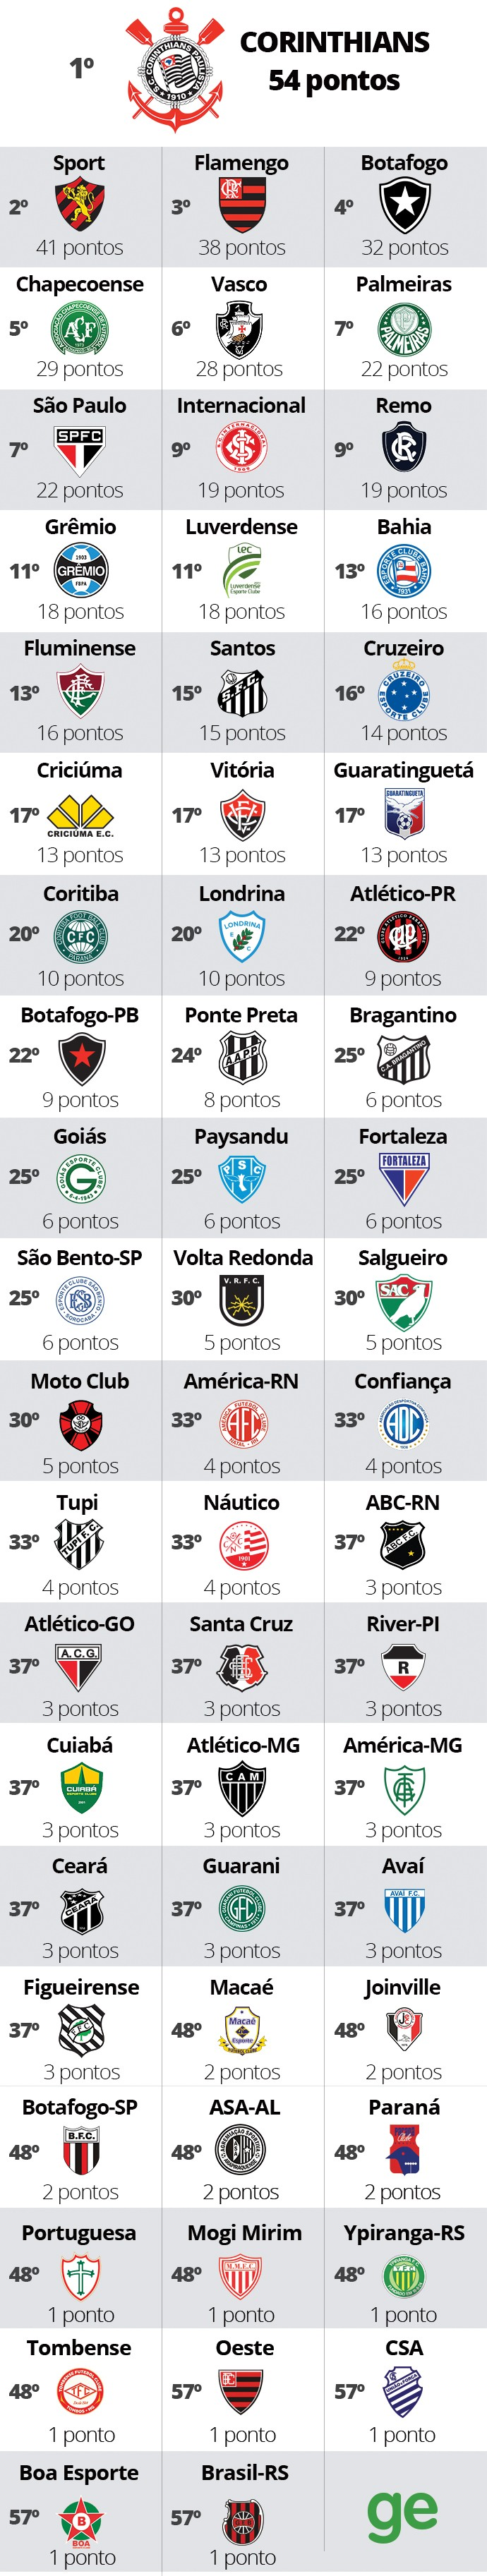 ranking clubes